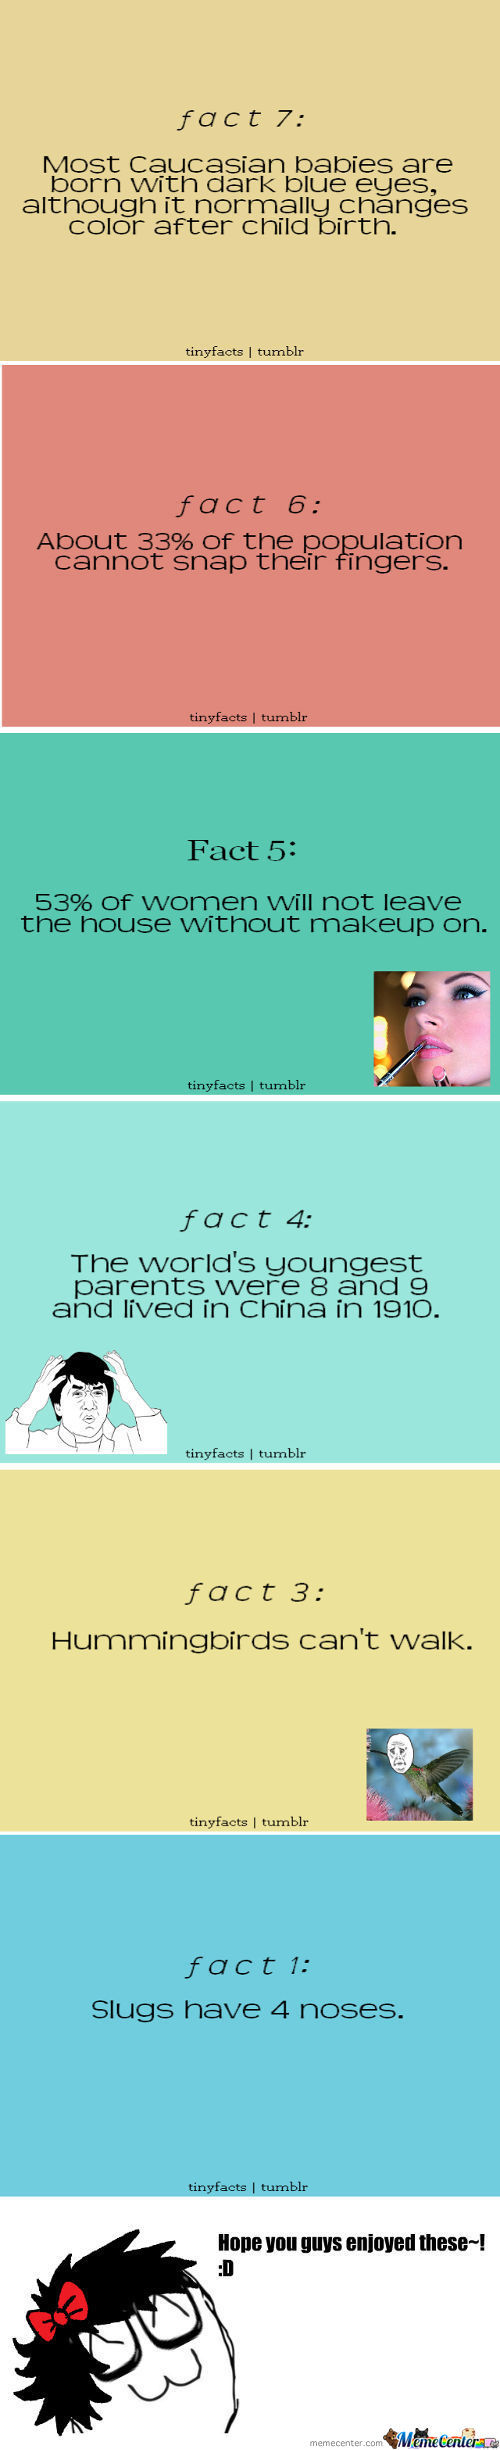 Awesome Facts #4